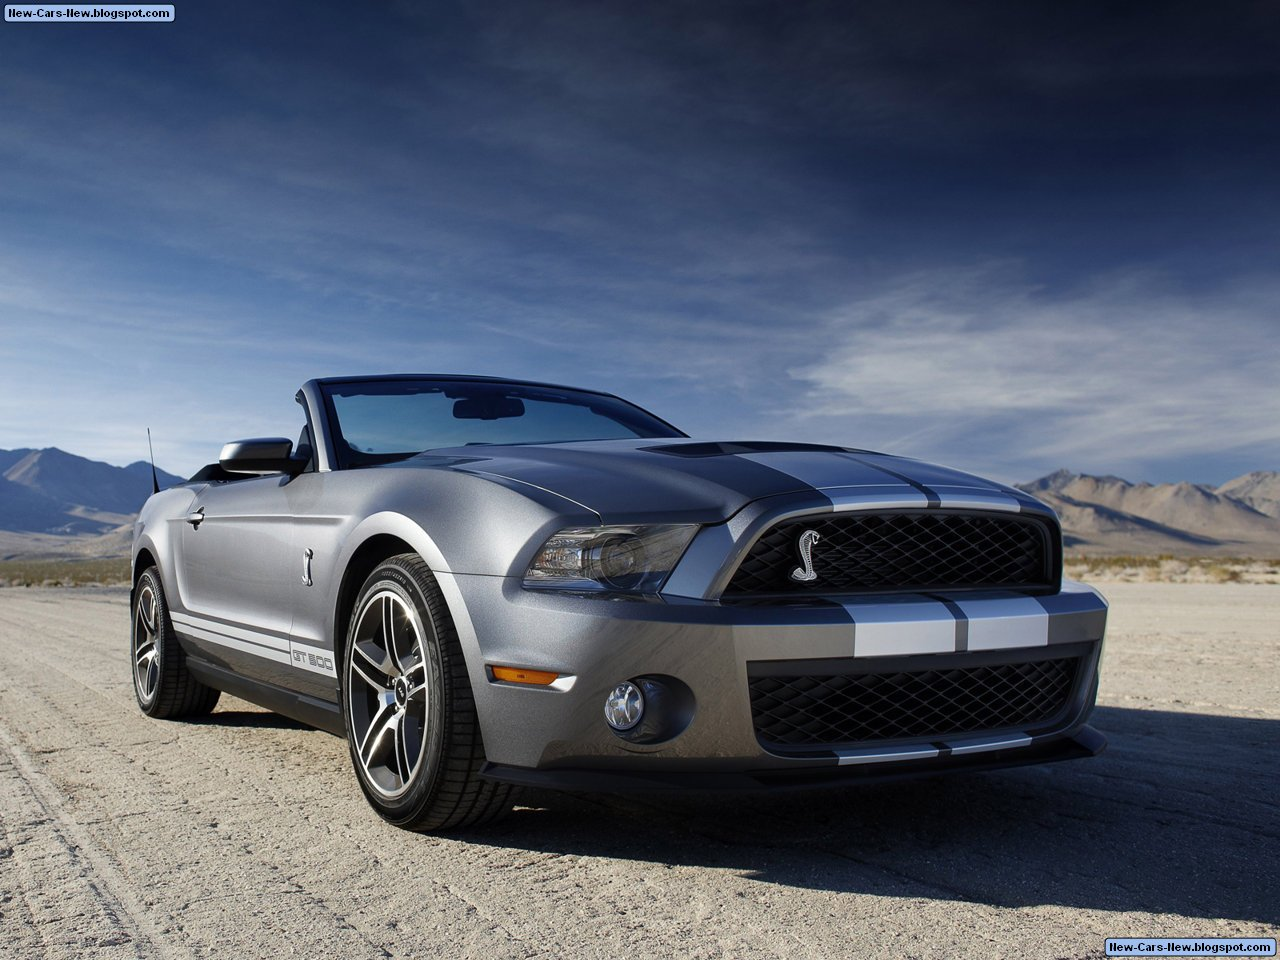 Ford Mustang Shelby Gt500 Convertible 2010 Best Car